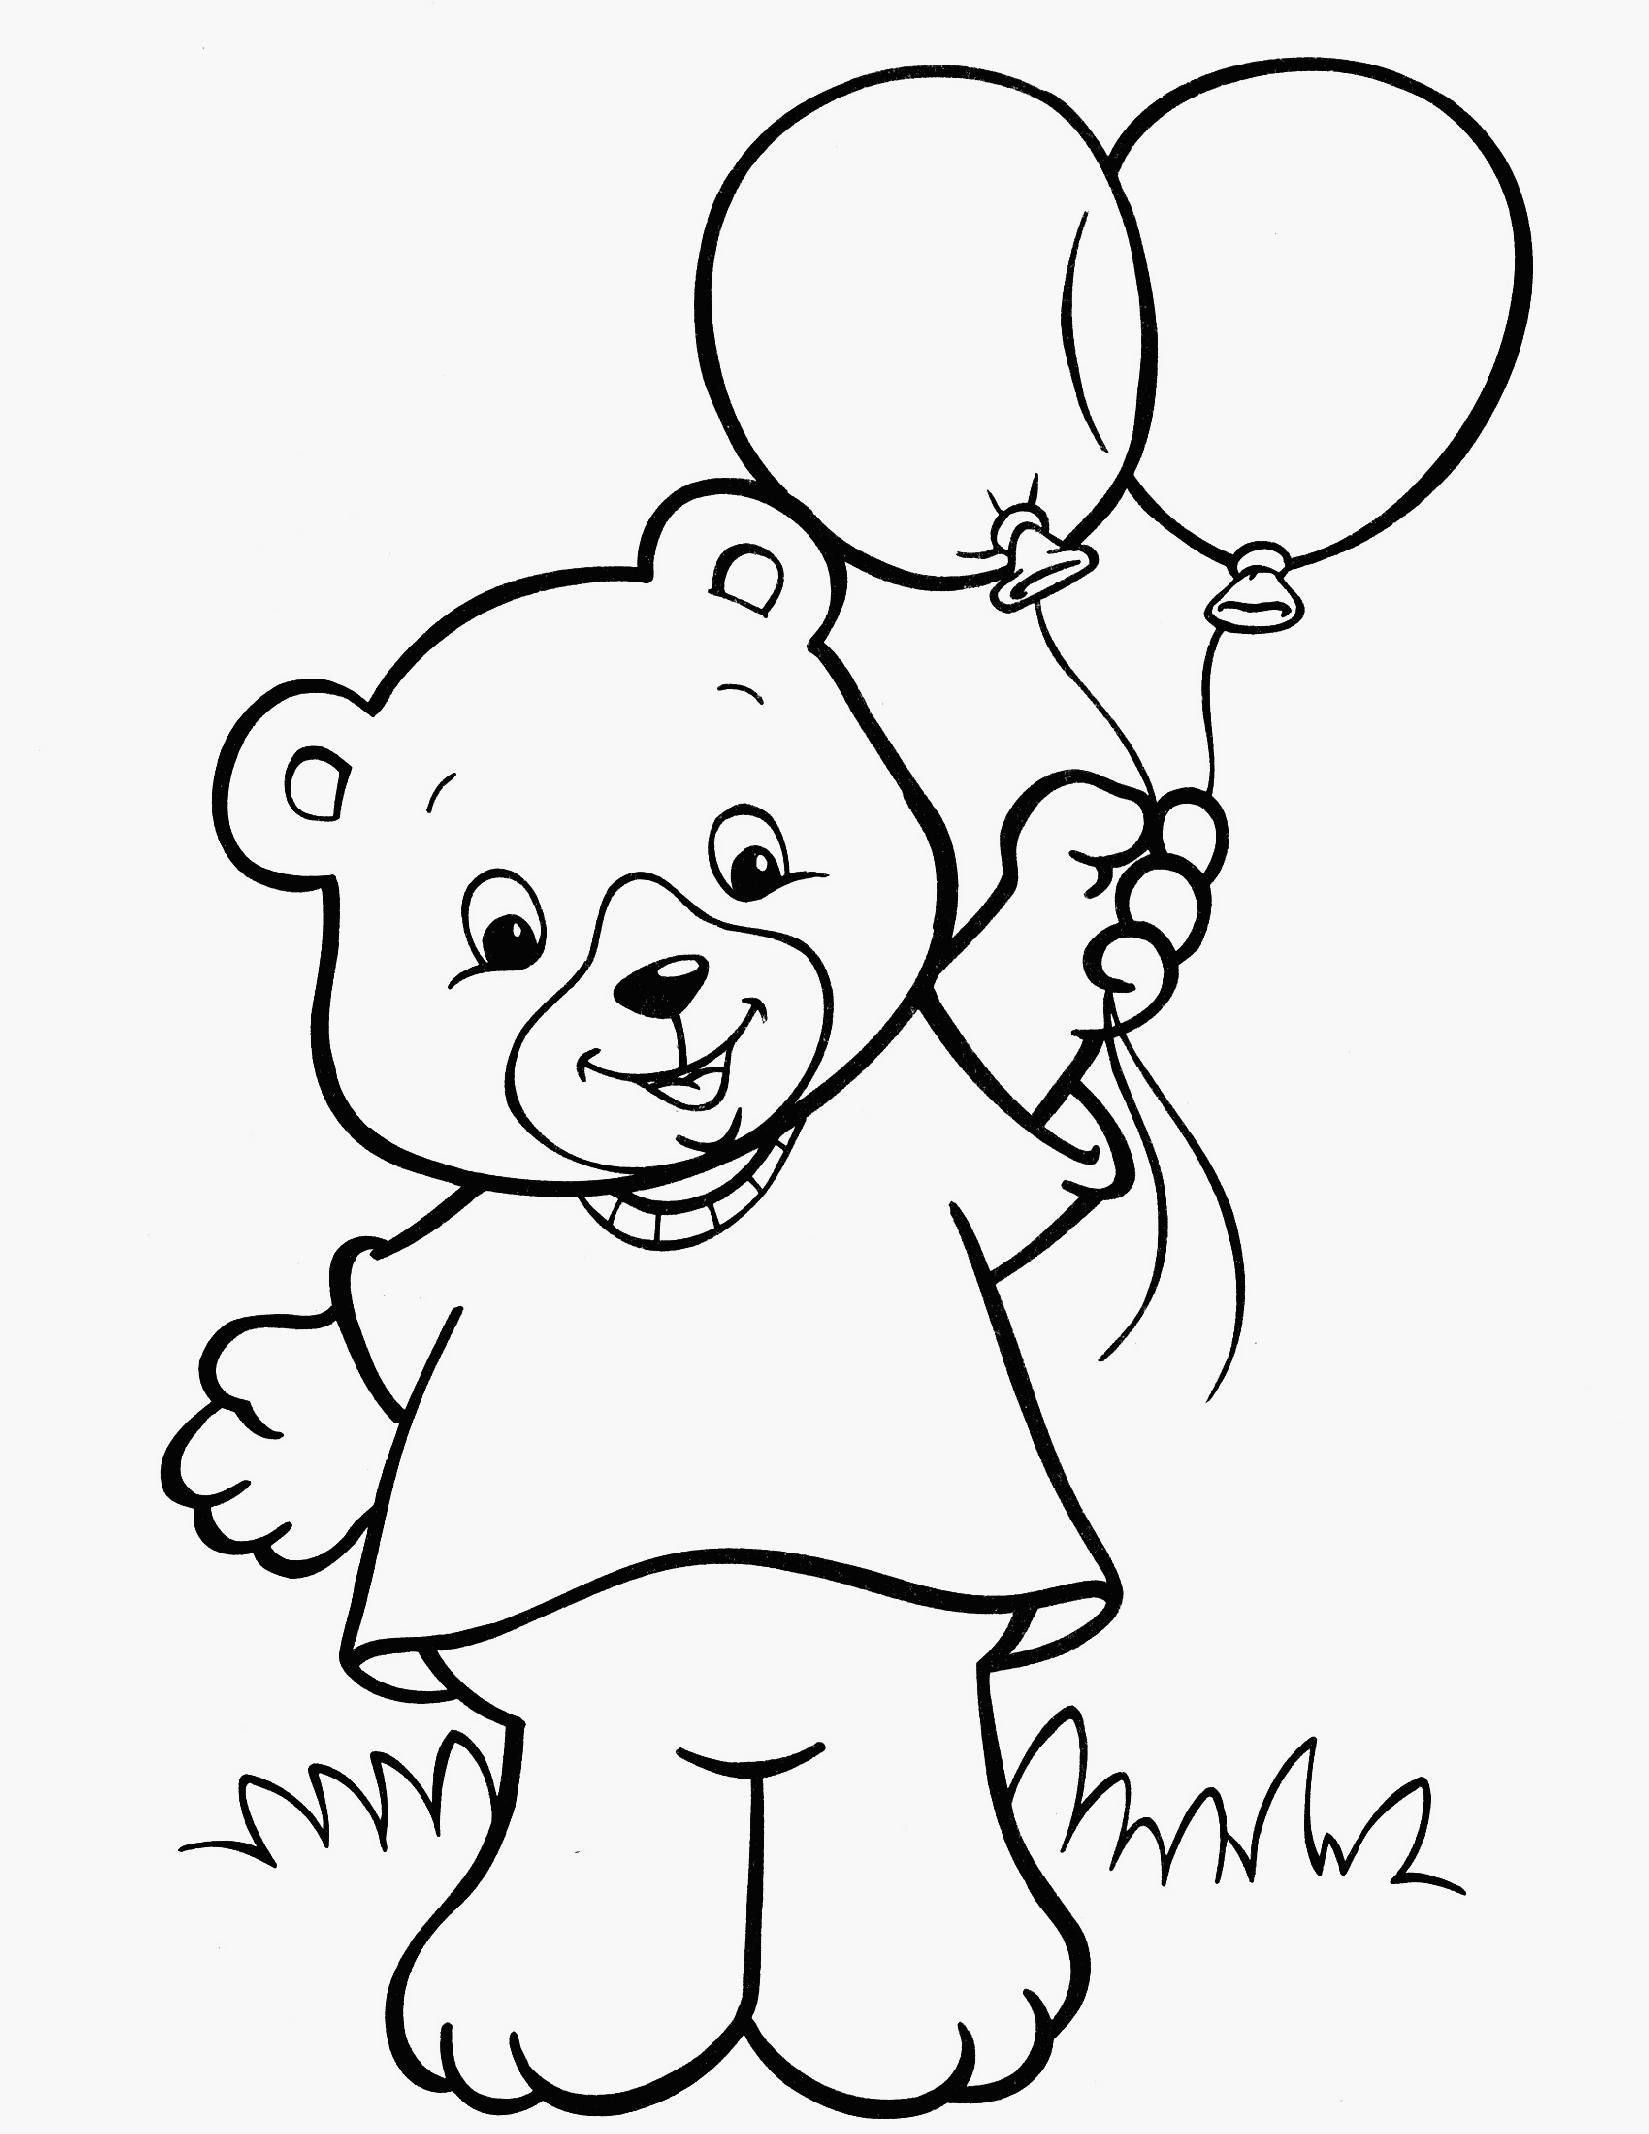 Fresh Coloring Pages For 3 Year Olds 92 With Additional Free In Bear Coloring Pages Birthday Coloring Pages Summer Coloring Pages